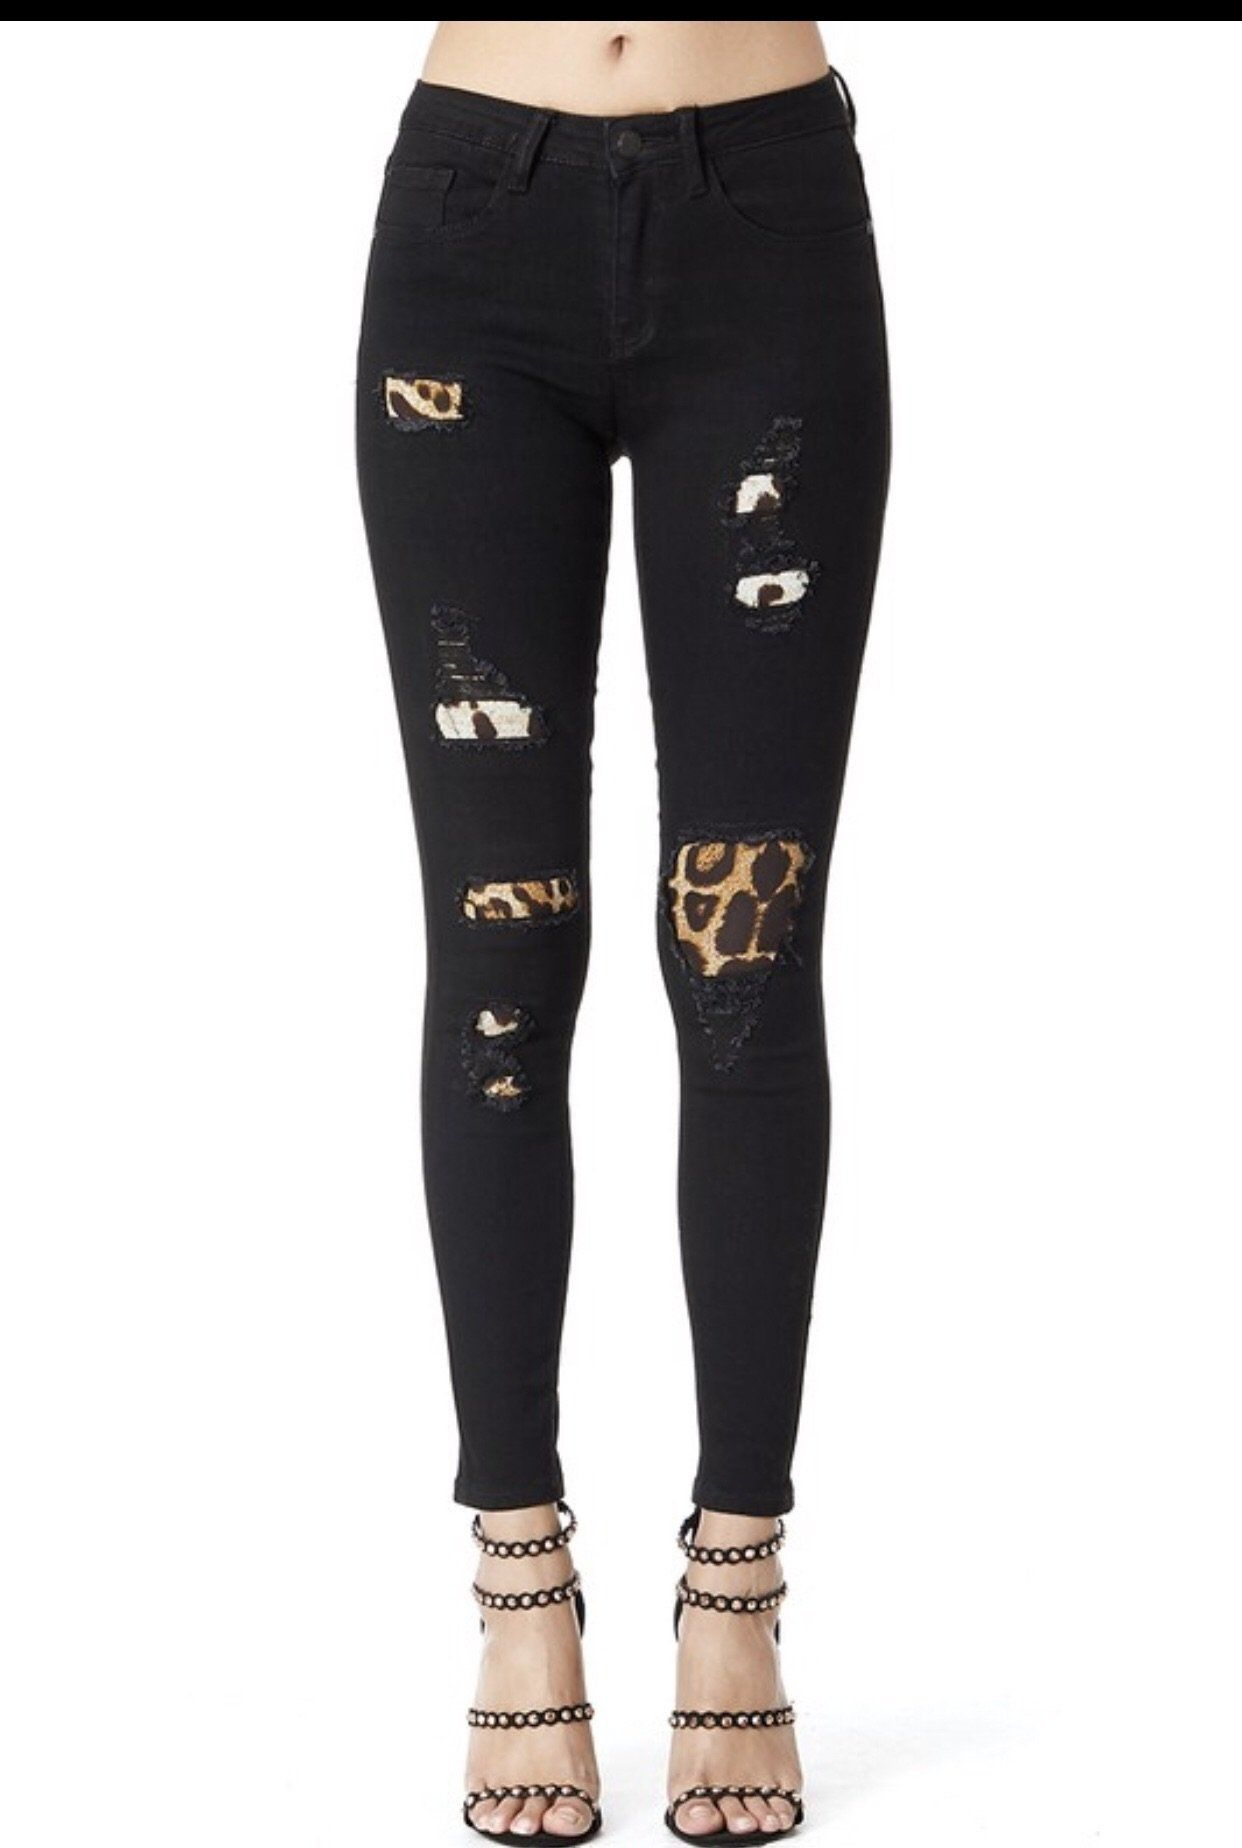 6298129c9b56 Leopard patch Judy blue jeans mid rise | Products | Jeans, Black ...